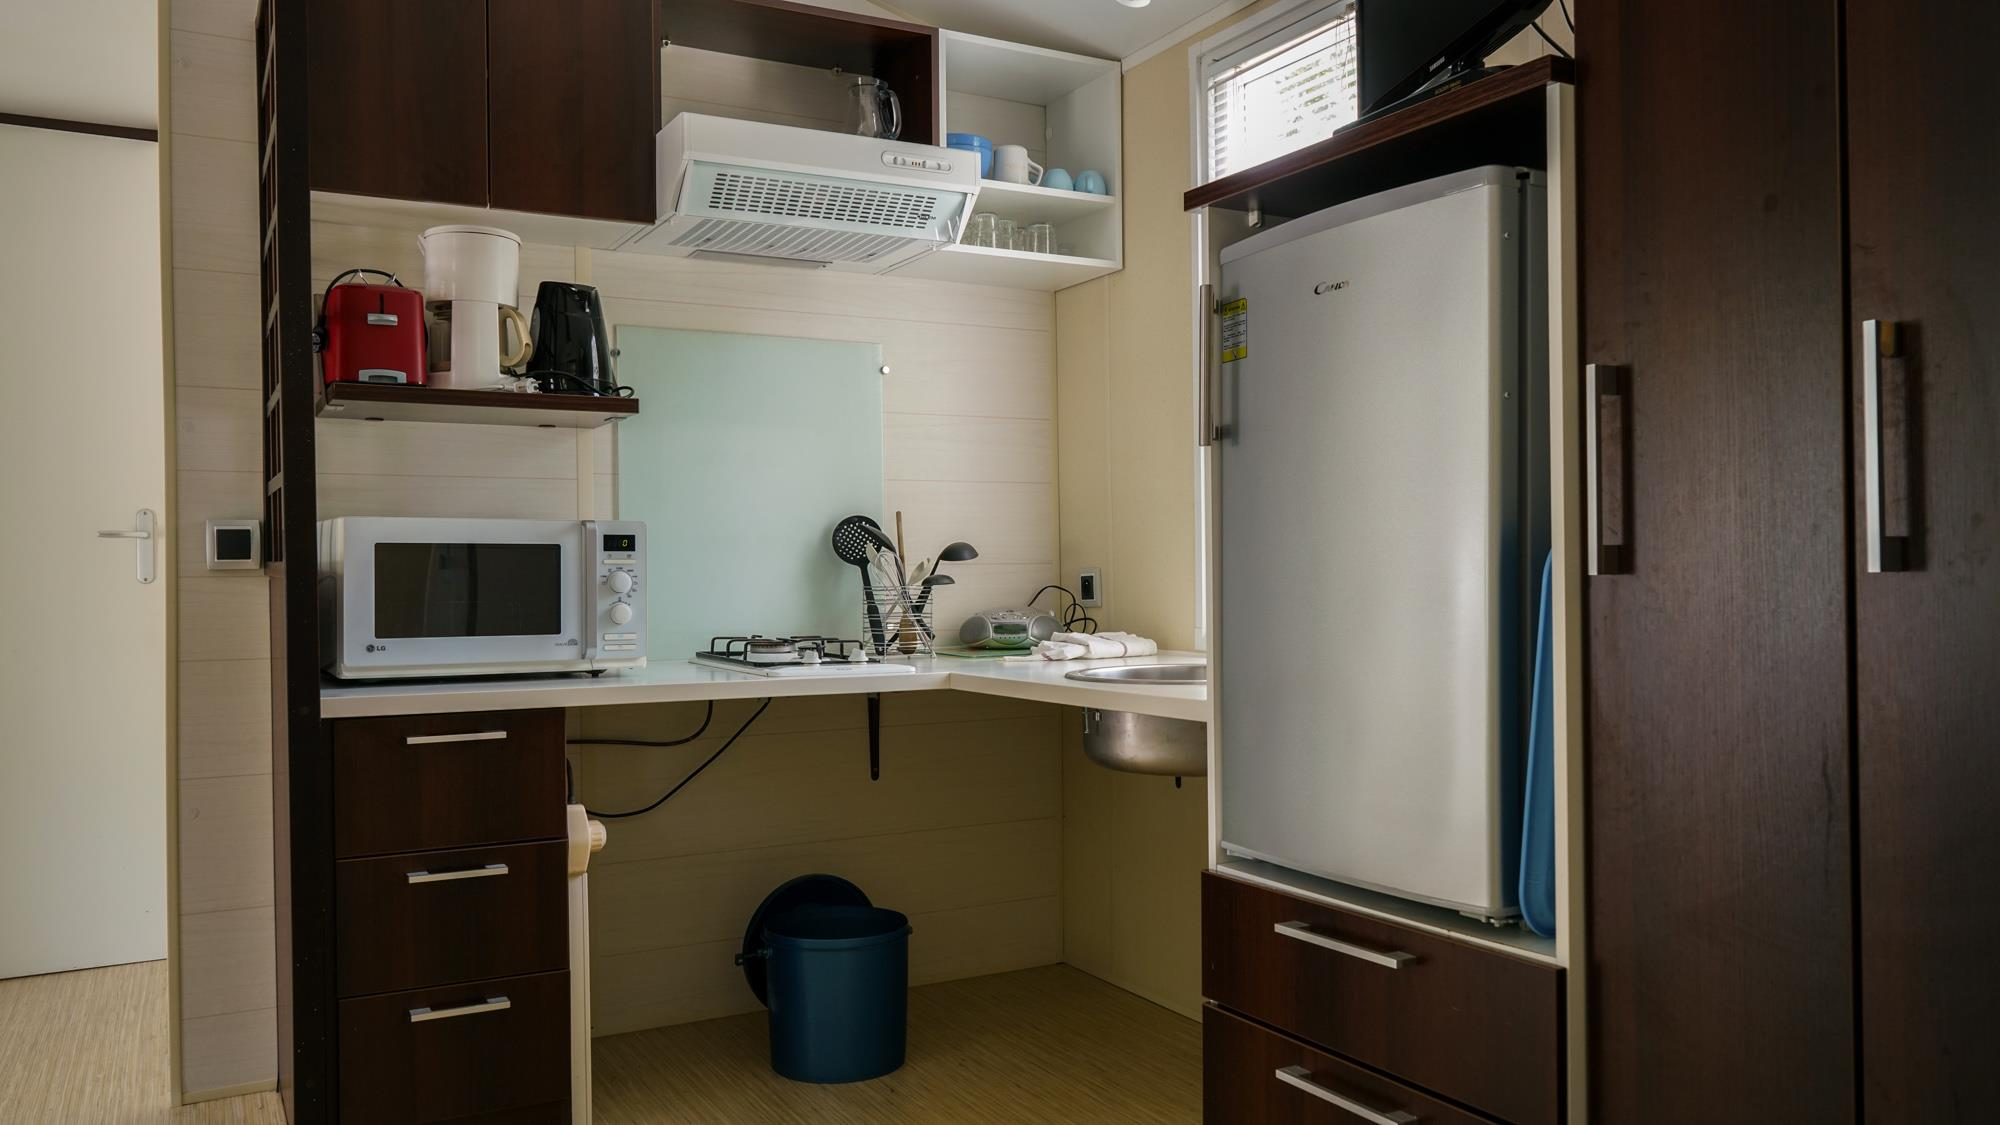 Pmr mobile home 1 bedroom 1 bathroom for 1 bed 1 bath mobile home